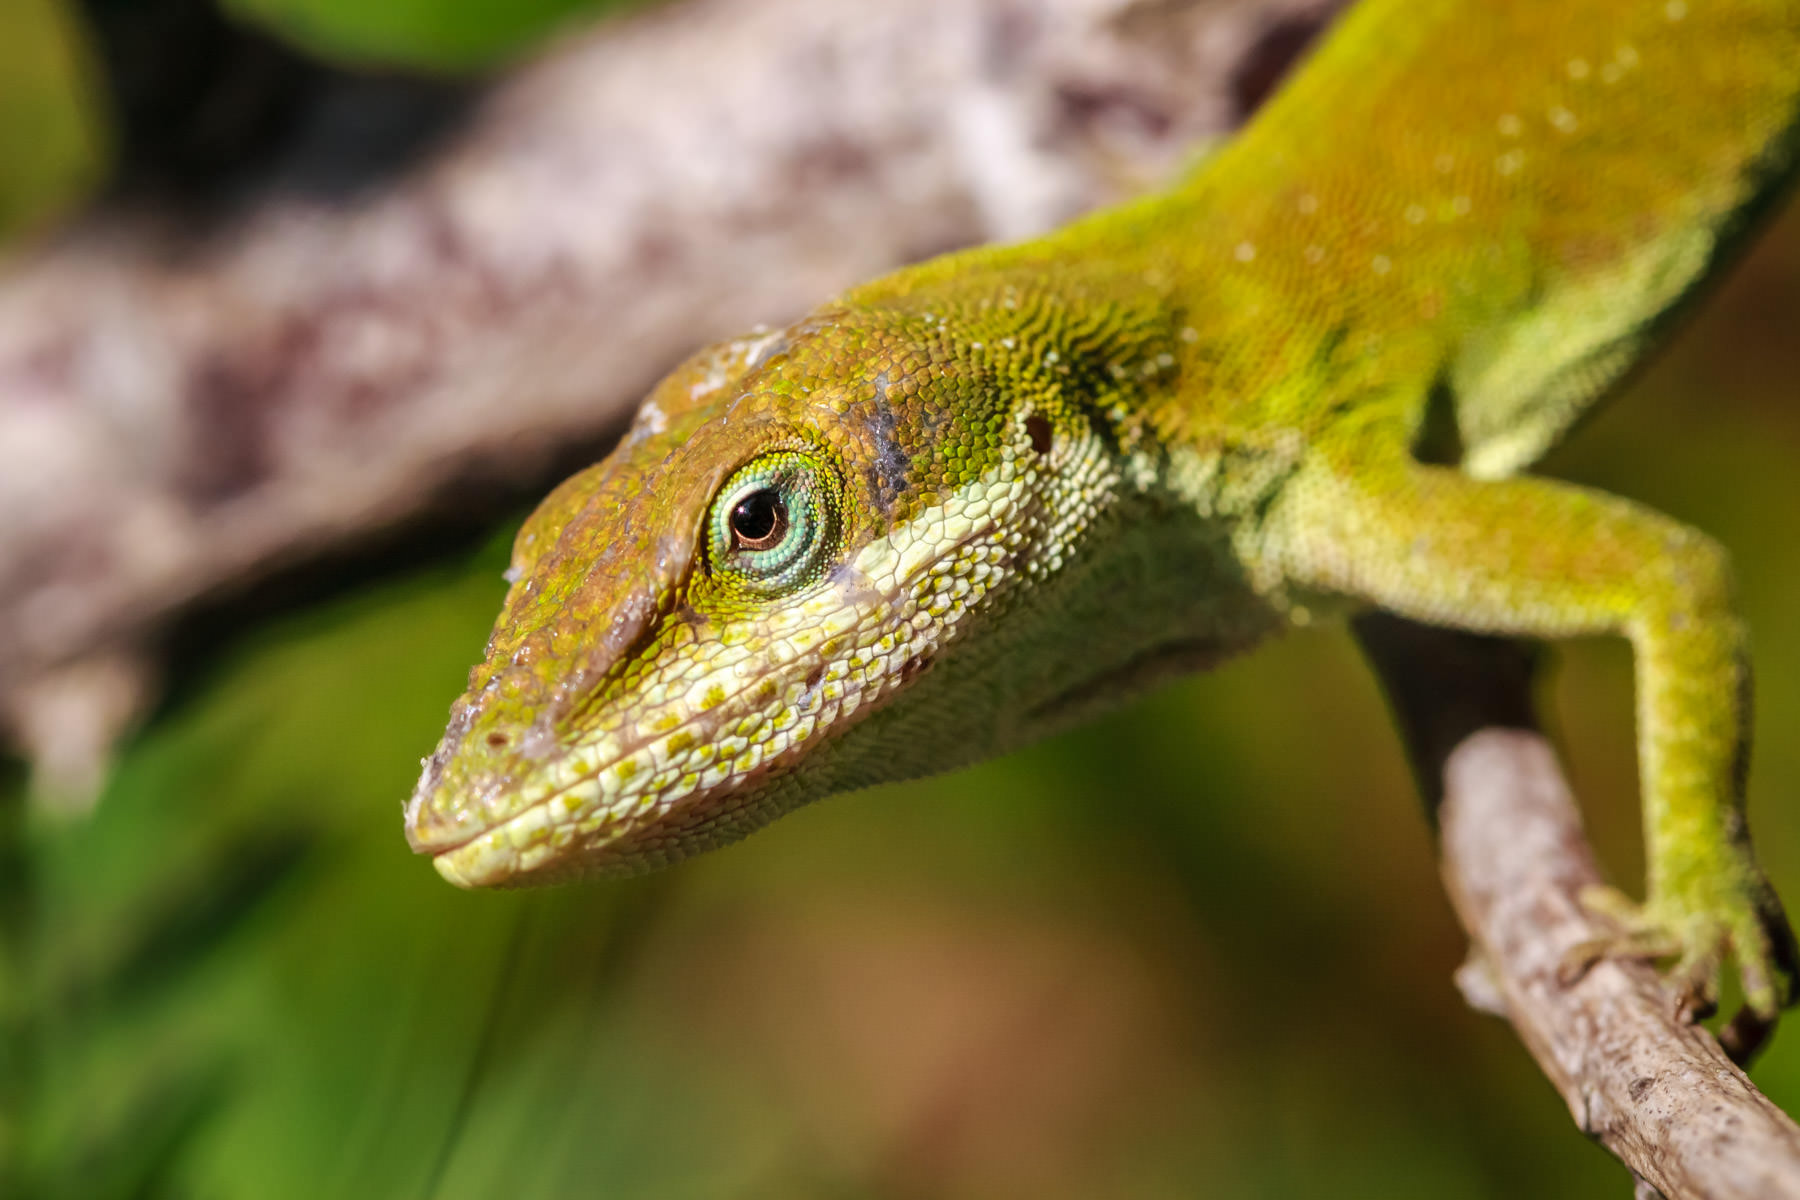 A green anole gives me a good look over while I take his photo in Tyler, Texas.